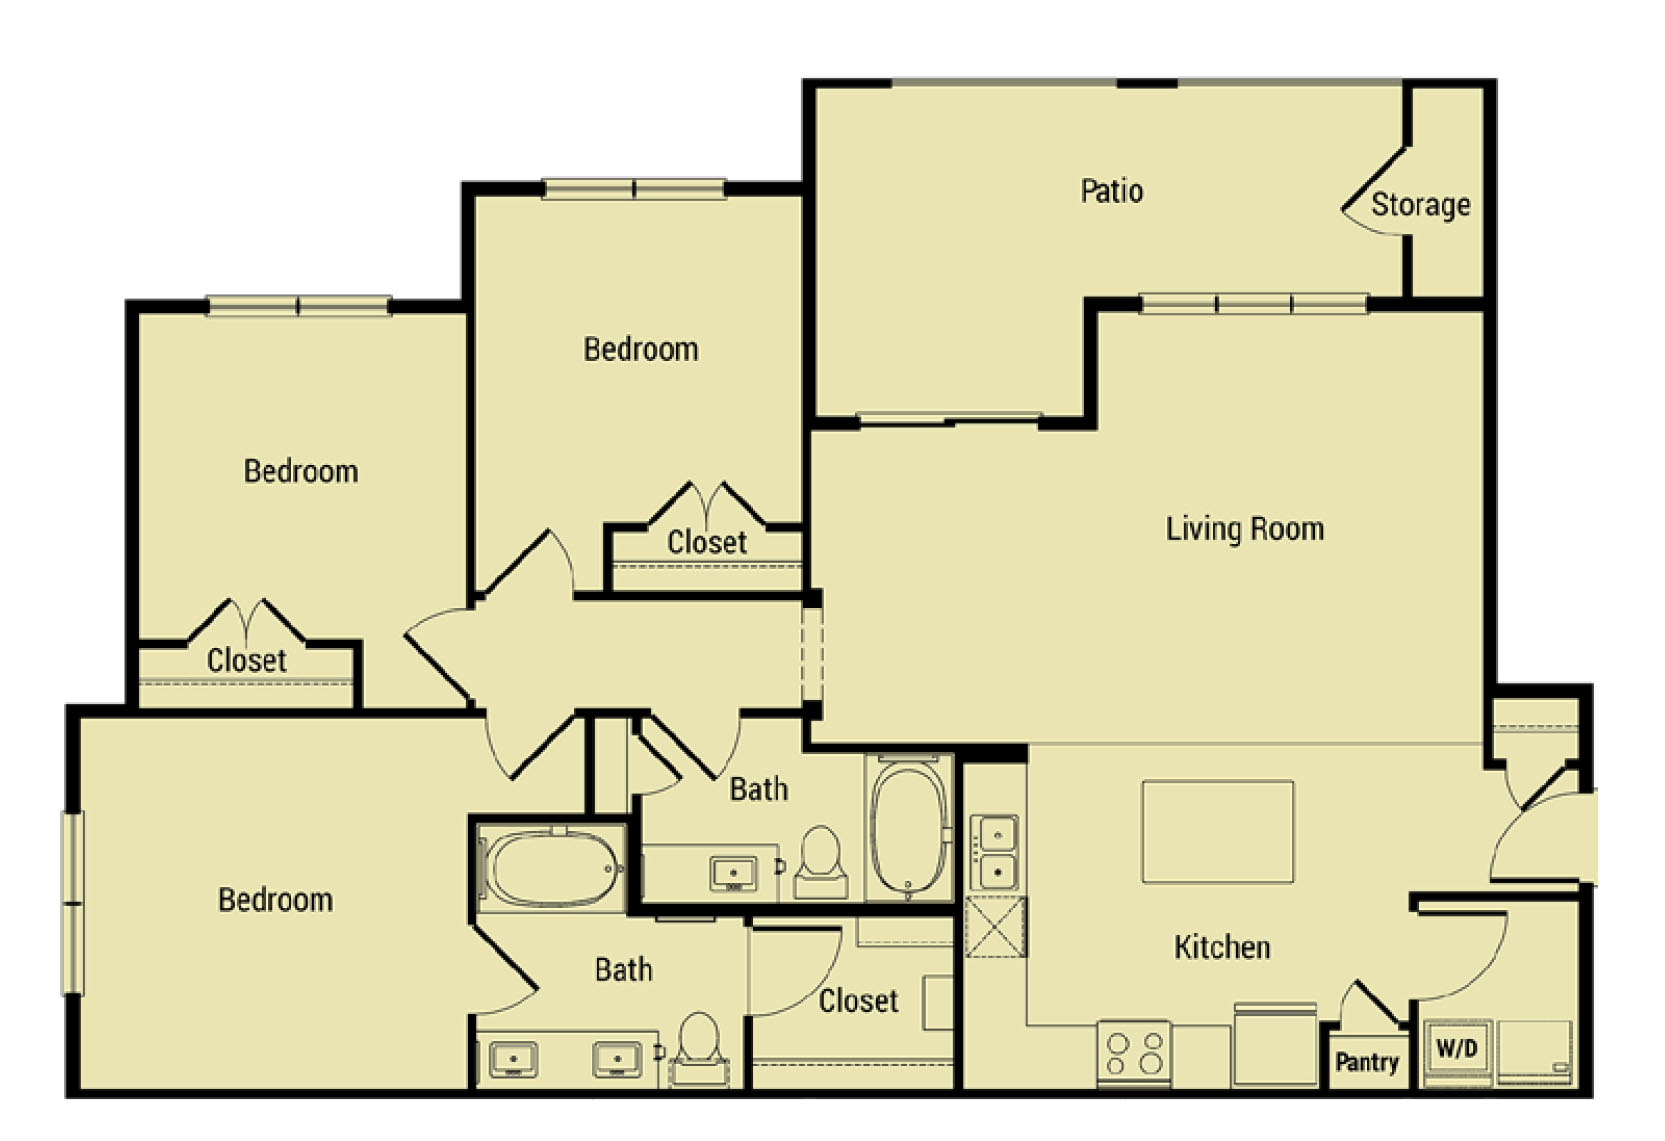 Floorplan - C1 Cupertino image